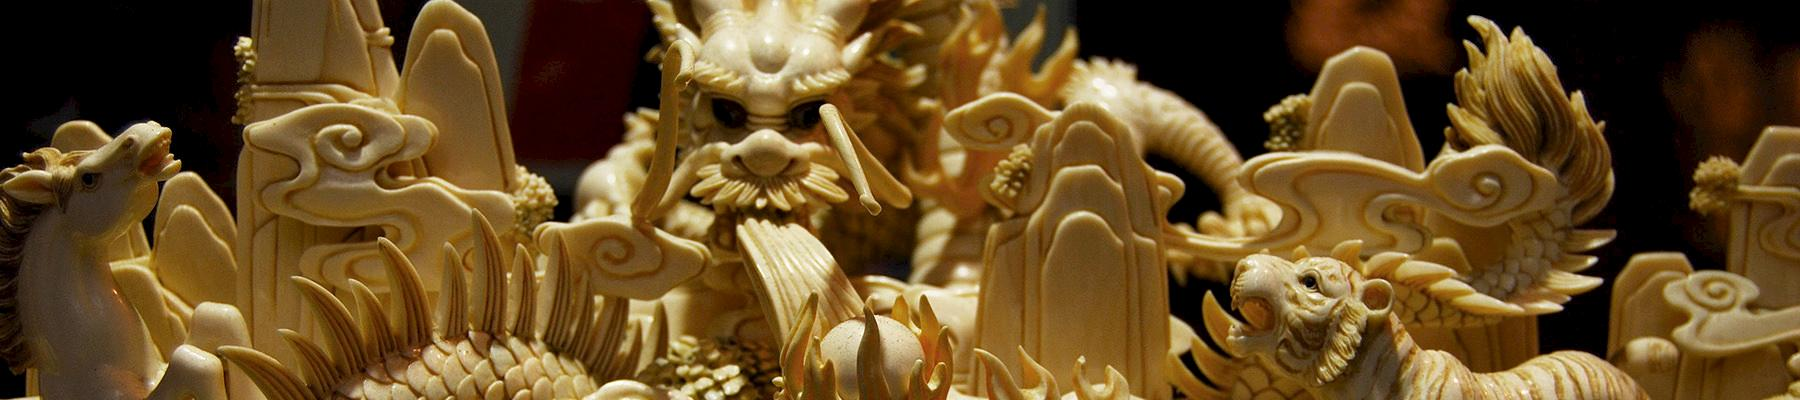 Ivory carvings on display at a shop in Hong Kong © vince42 / Generic CC 2.0